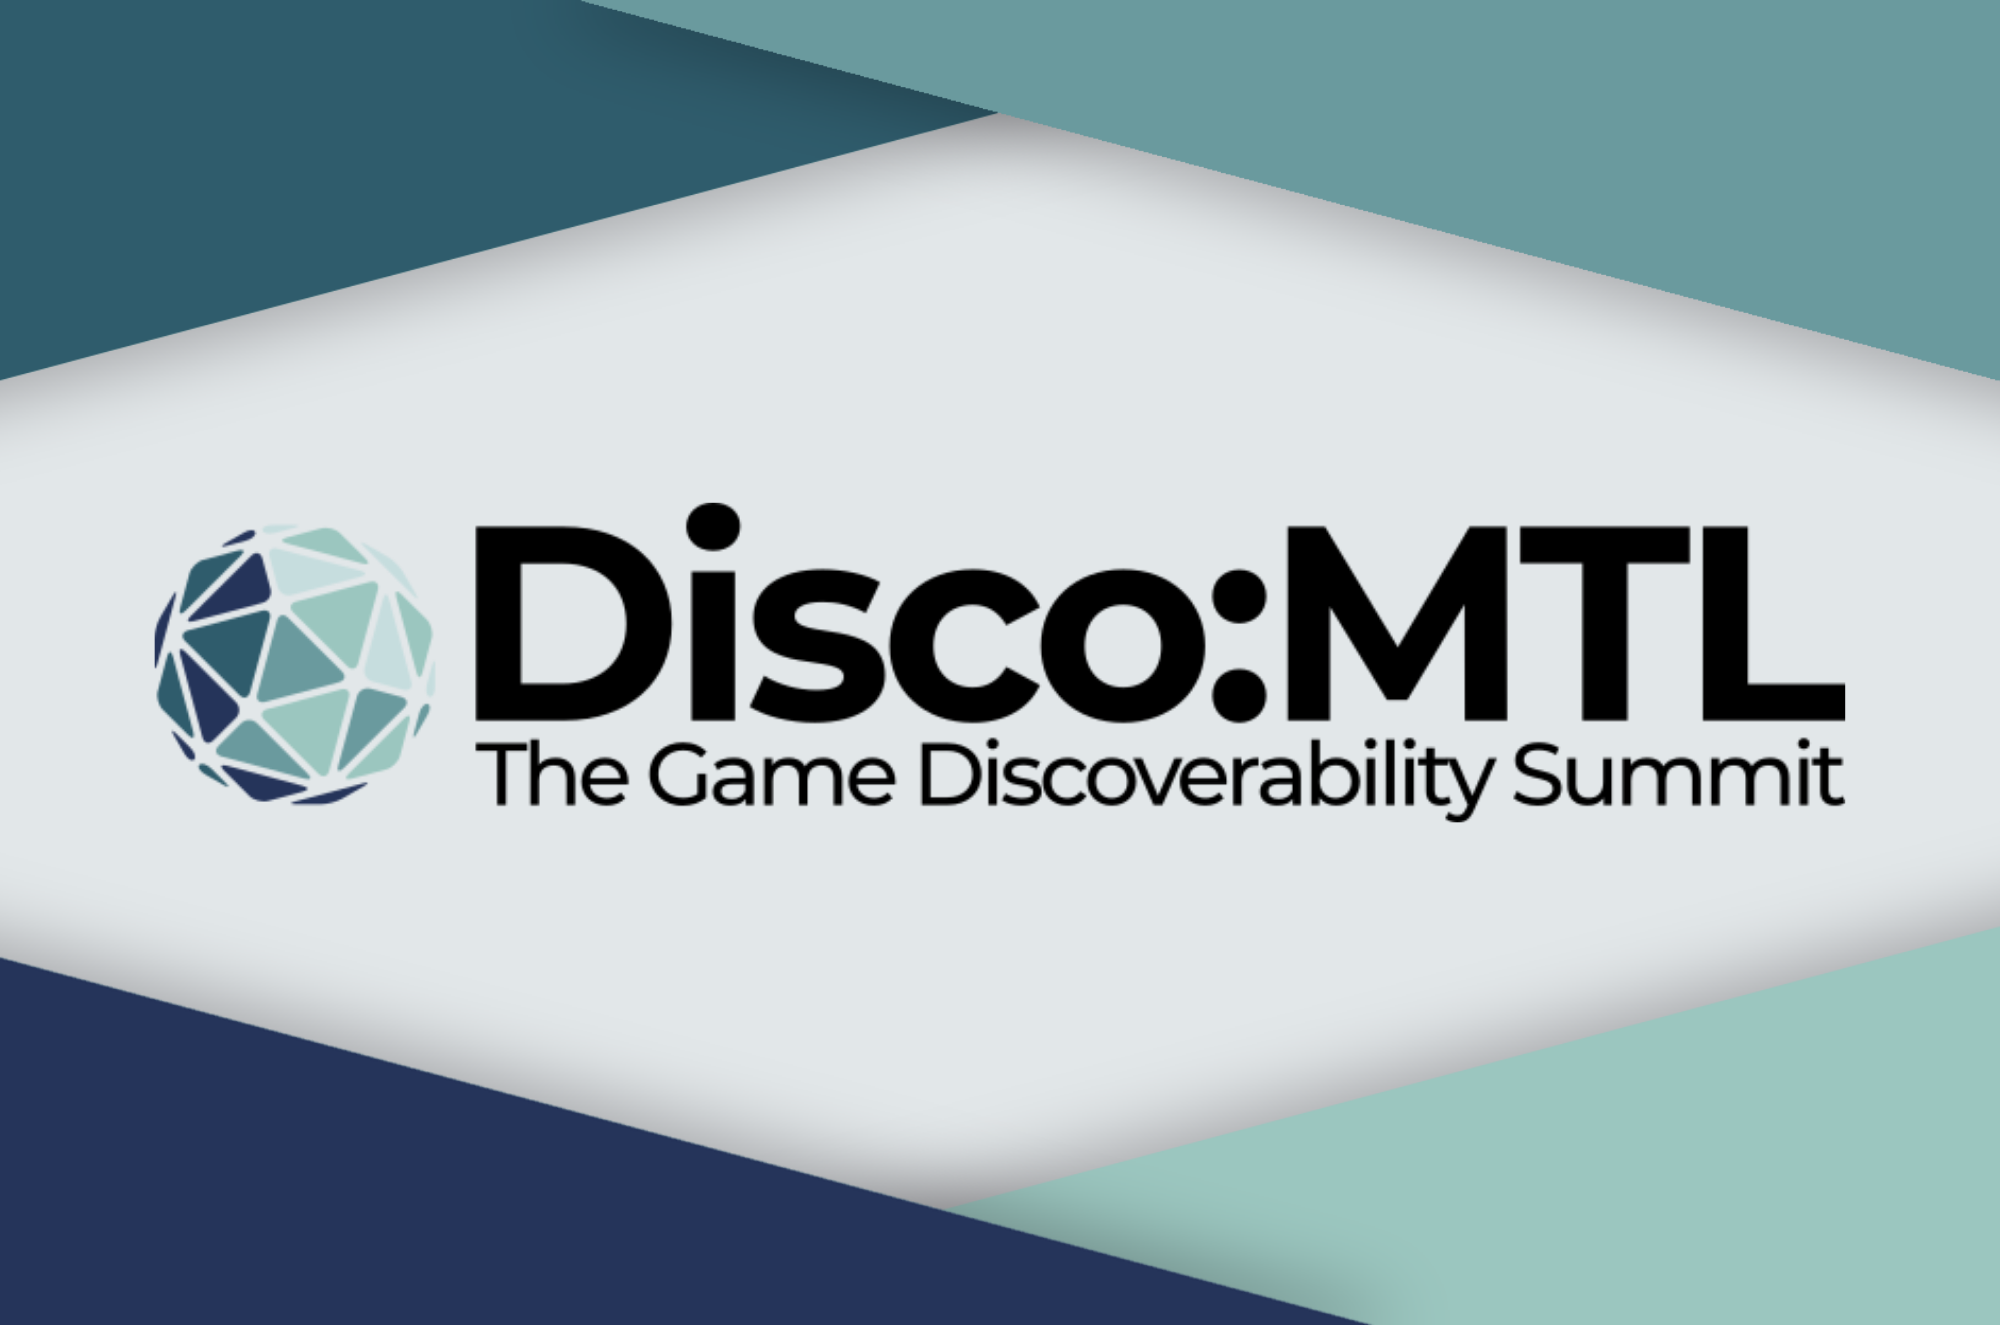 Disco:MTL - The Game Discoverability Summit